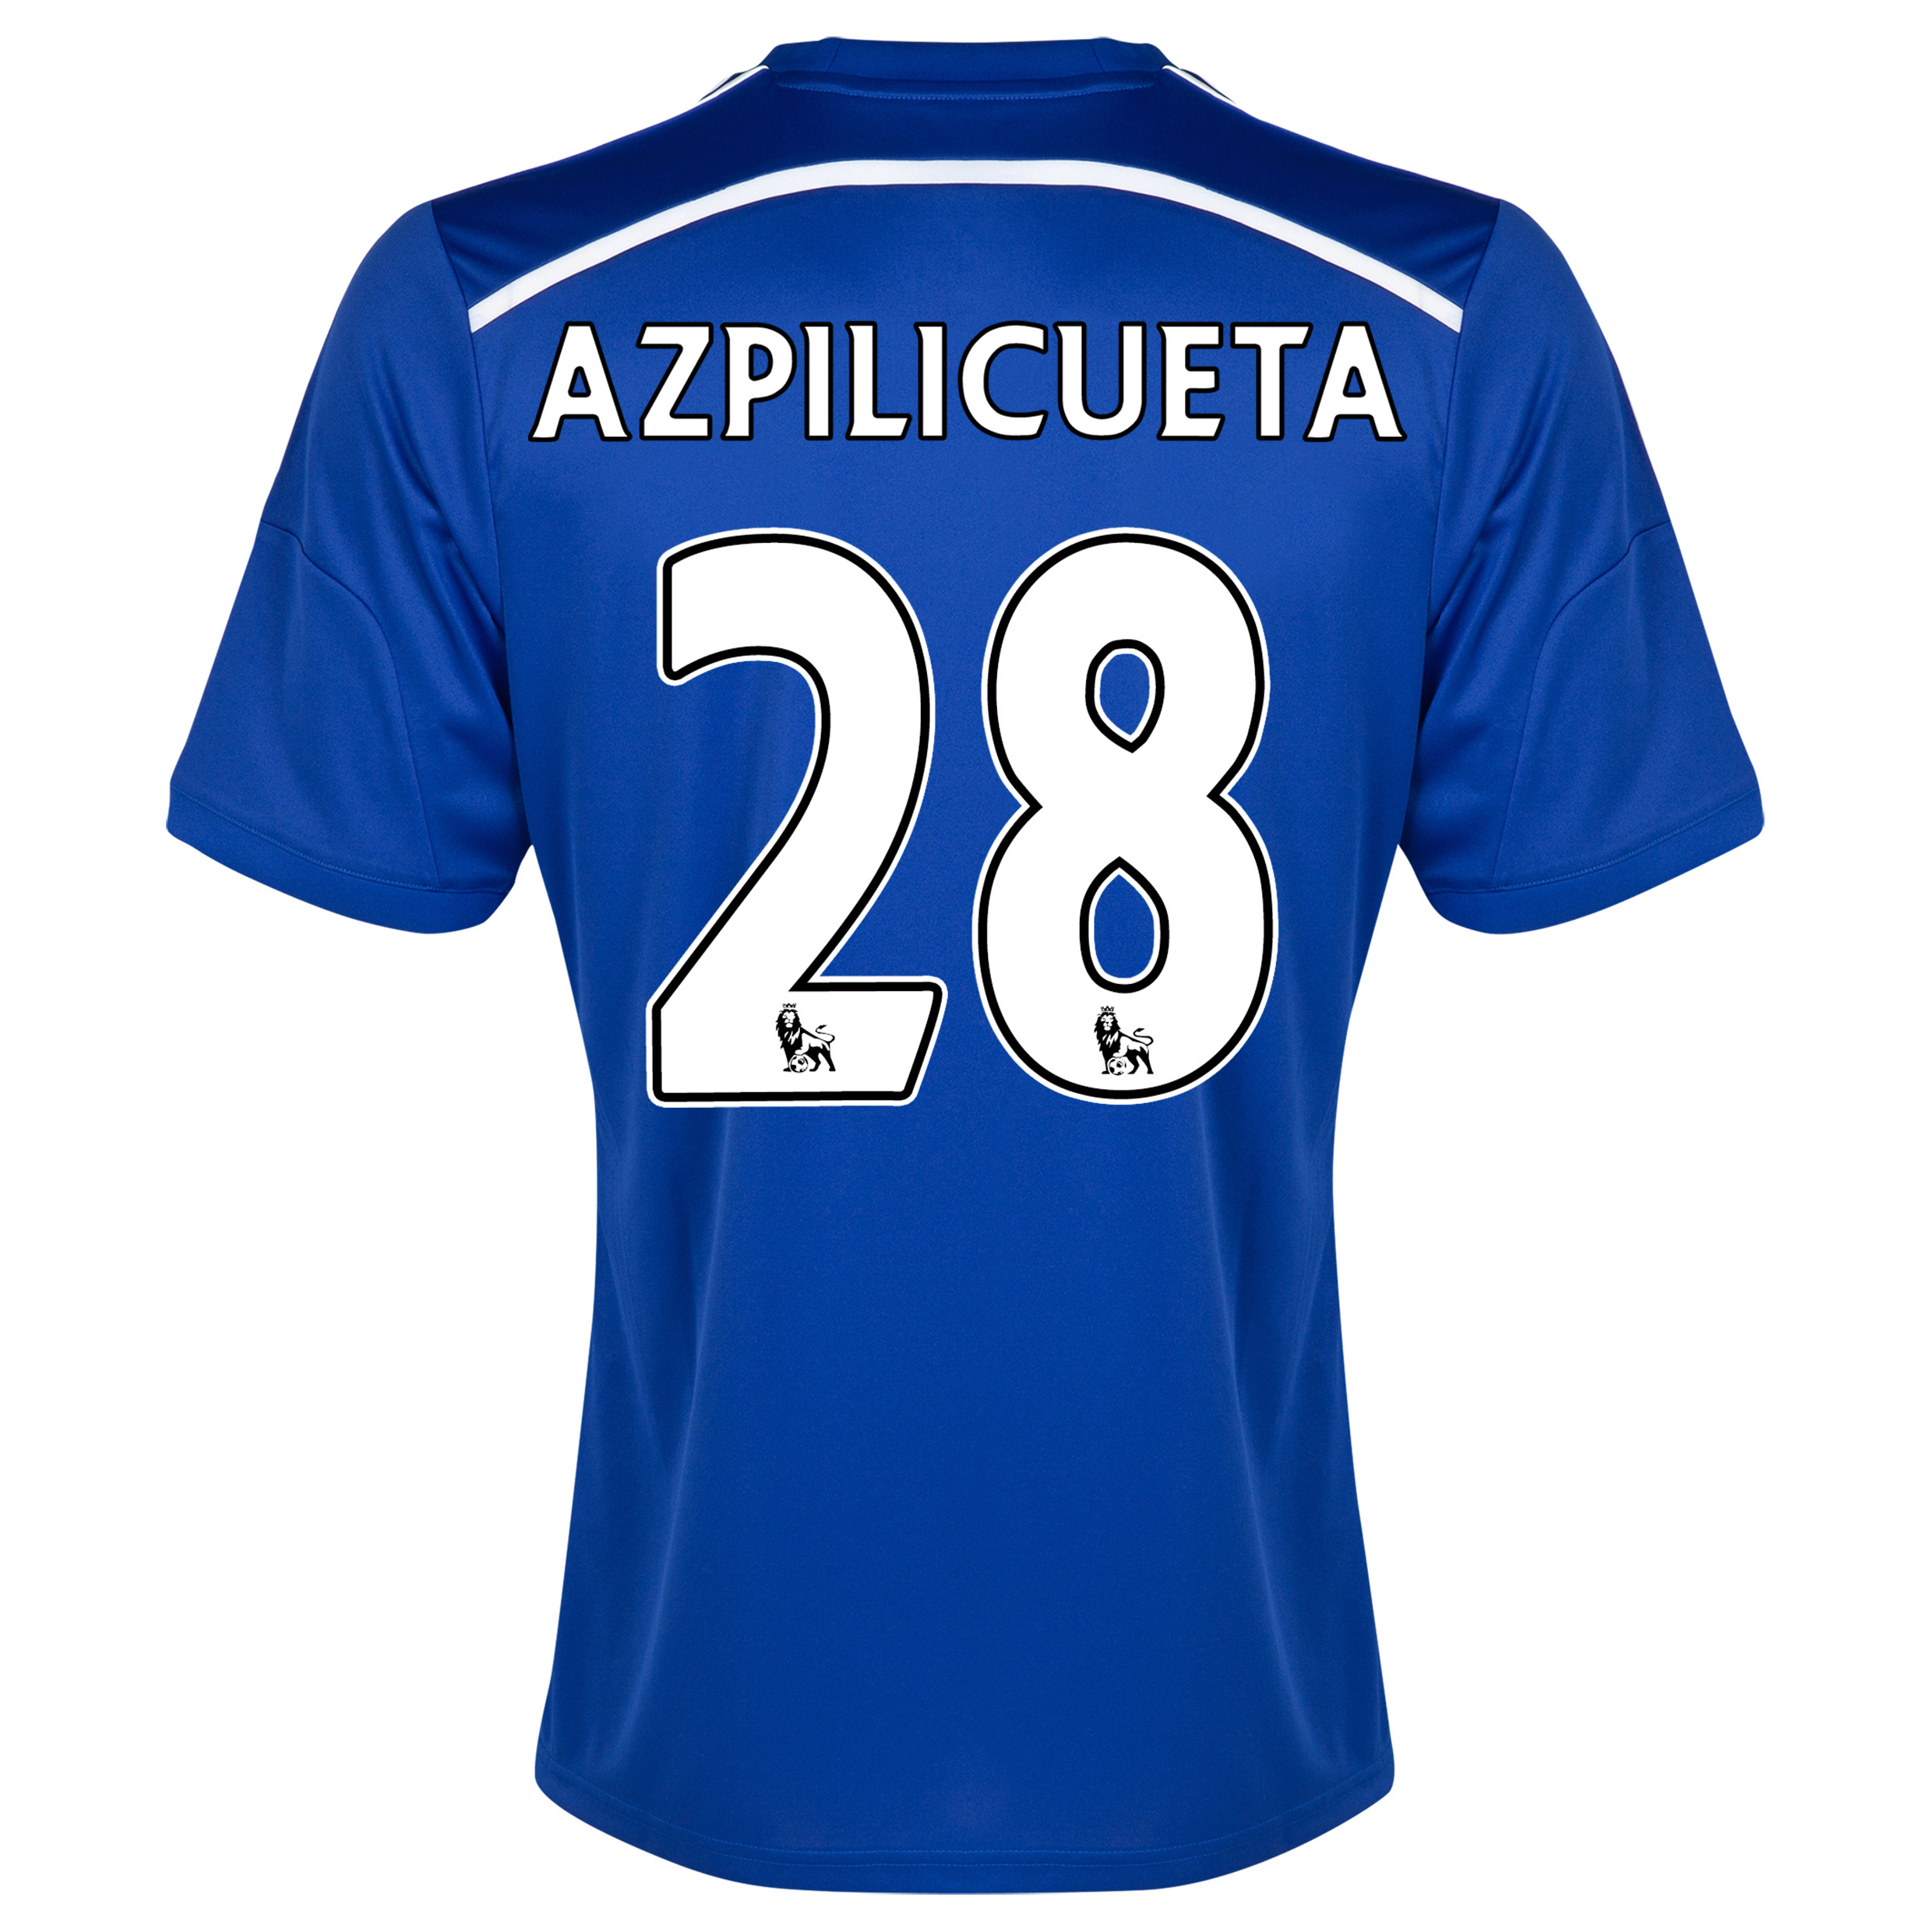 with Azpilicueta 28 printing